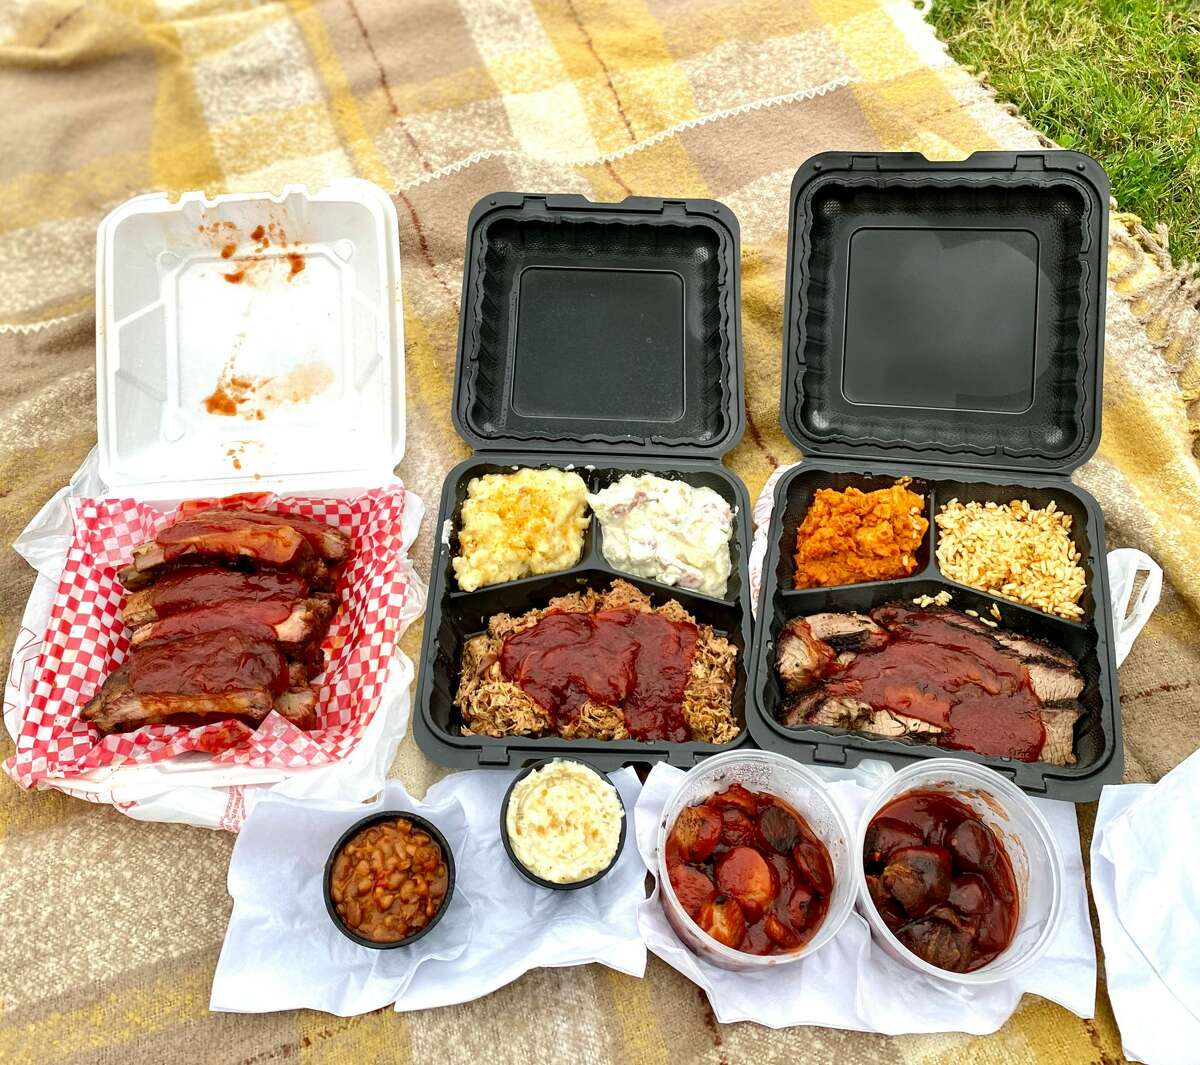 Picking up a barbecue spread from Iron Works Grill in Troy will win you friends at after-school sports and other events.